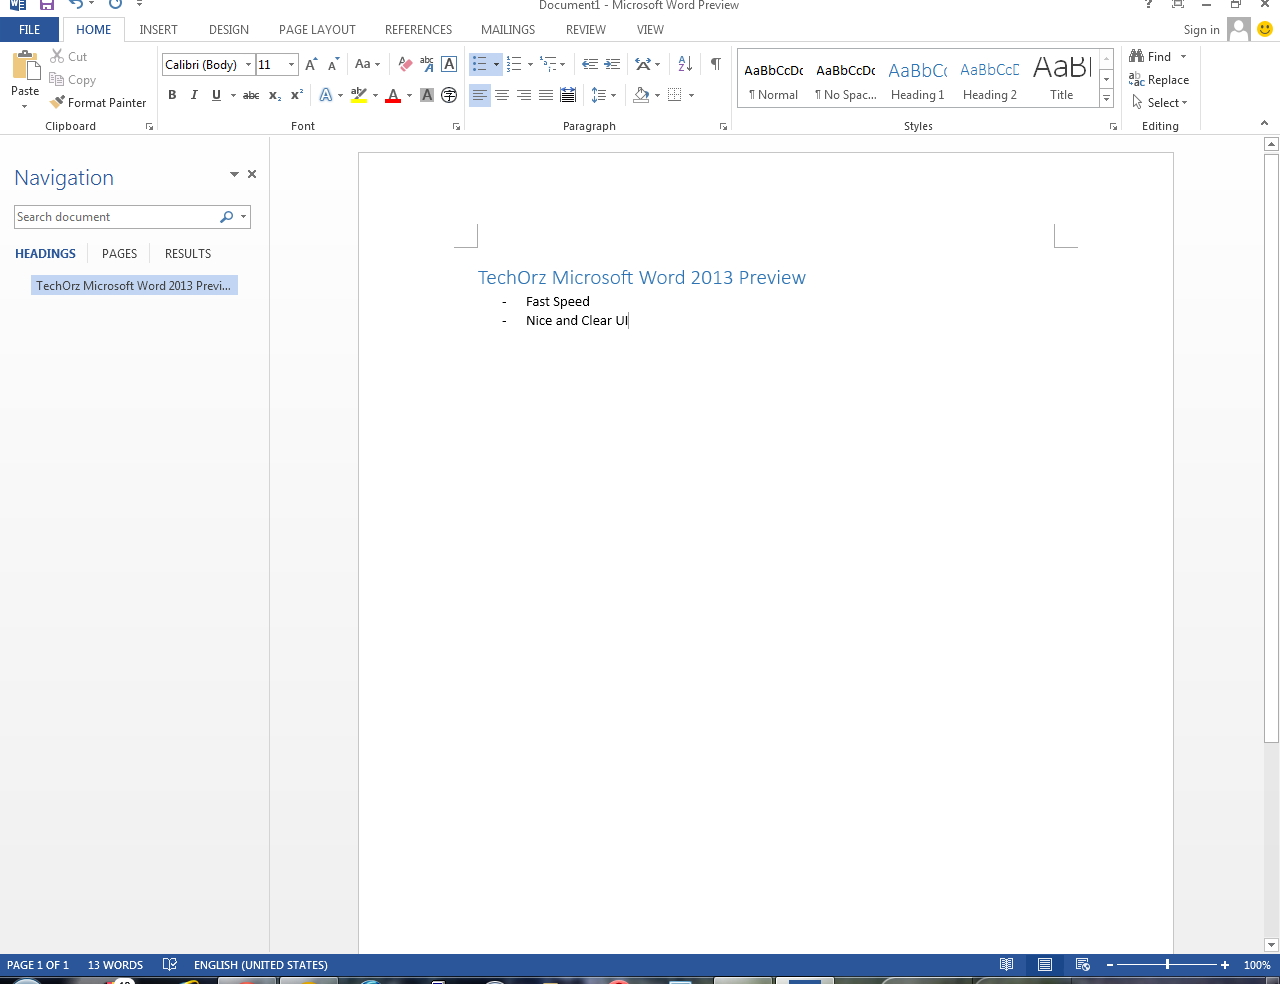 Microsoft Office 2013 - Word